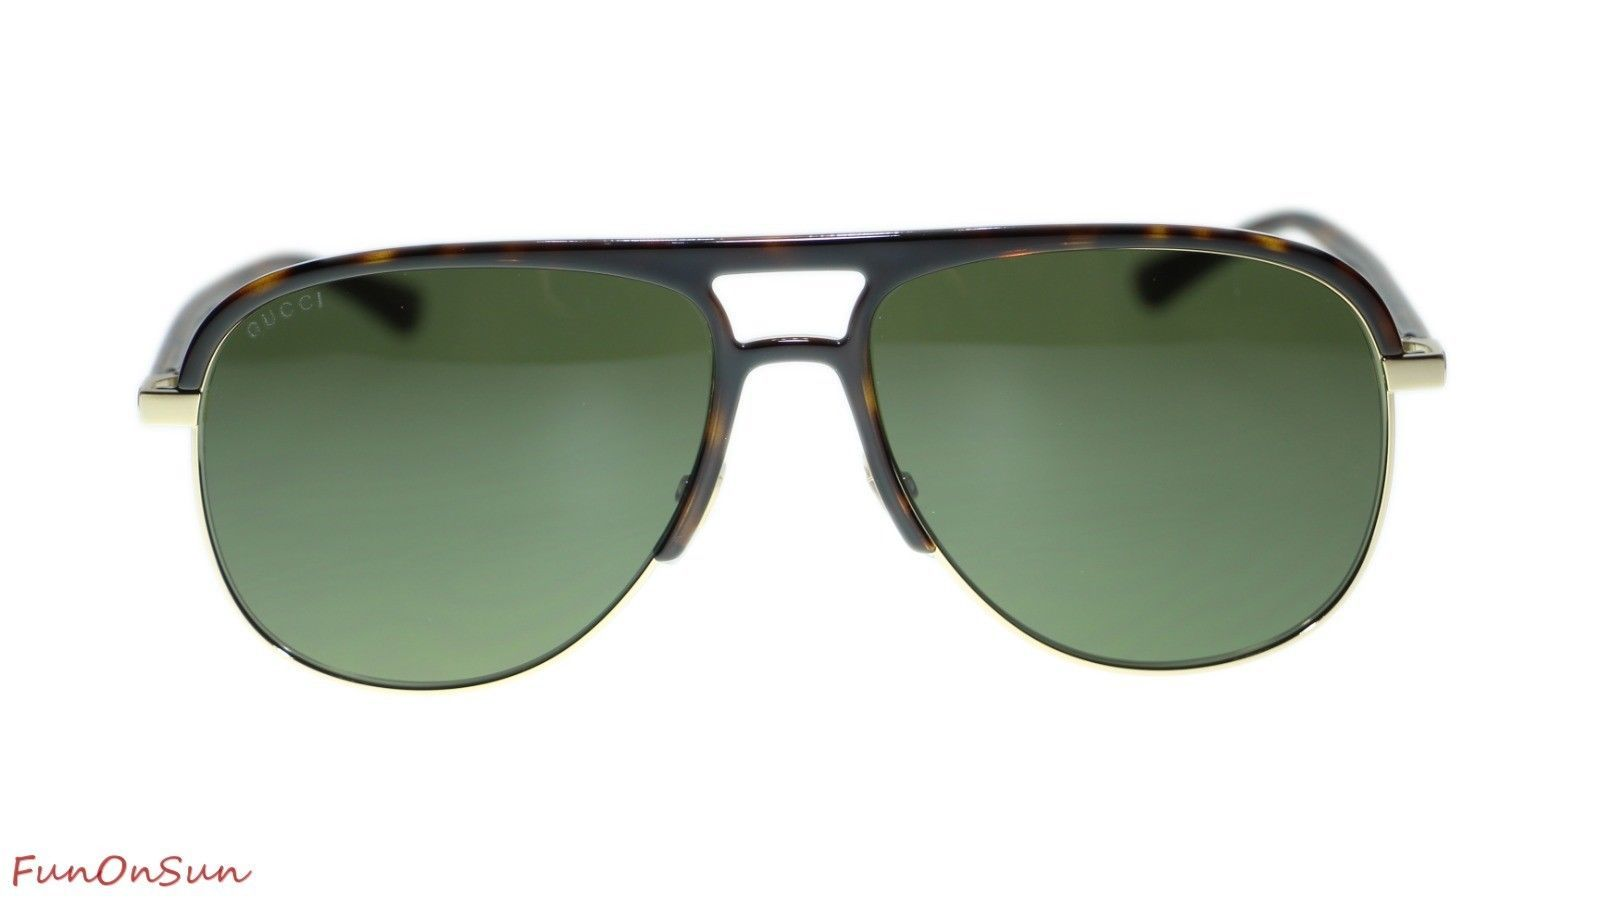 50f9b5d40f3d 10. 10. Previous. NEW Gucci Men's Sunglasses GG0292S 003 Havana Green Lens  Pilot 60mm Authentic. NEW ...